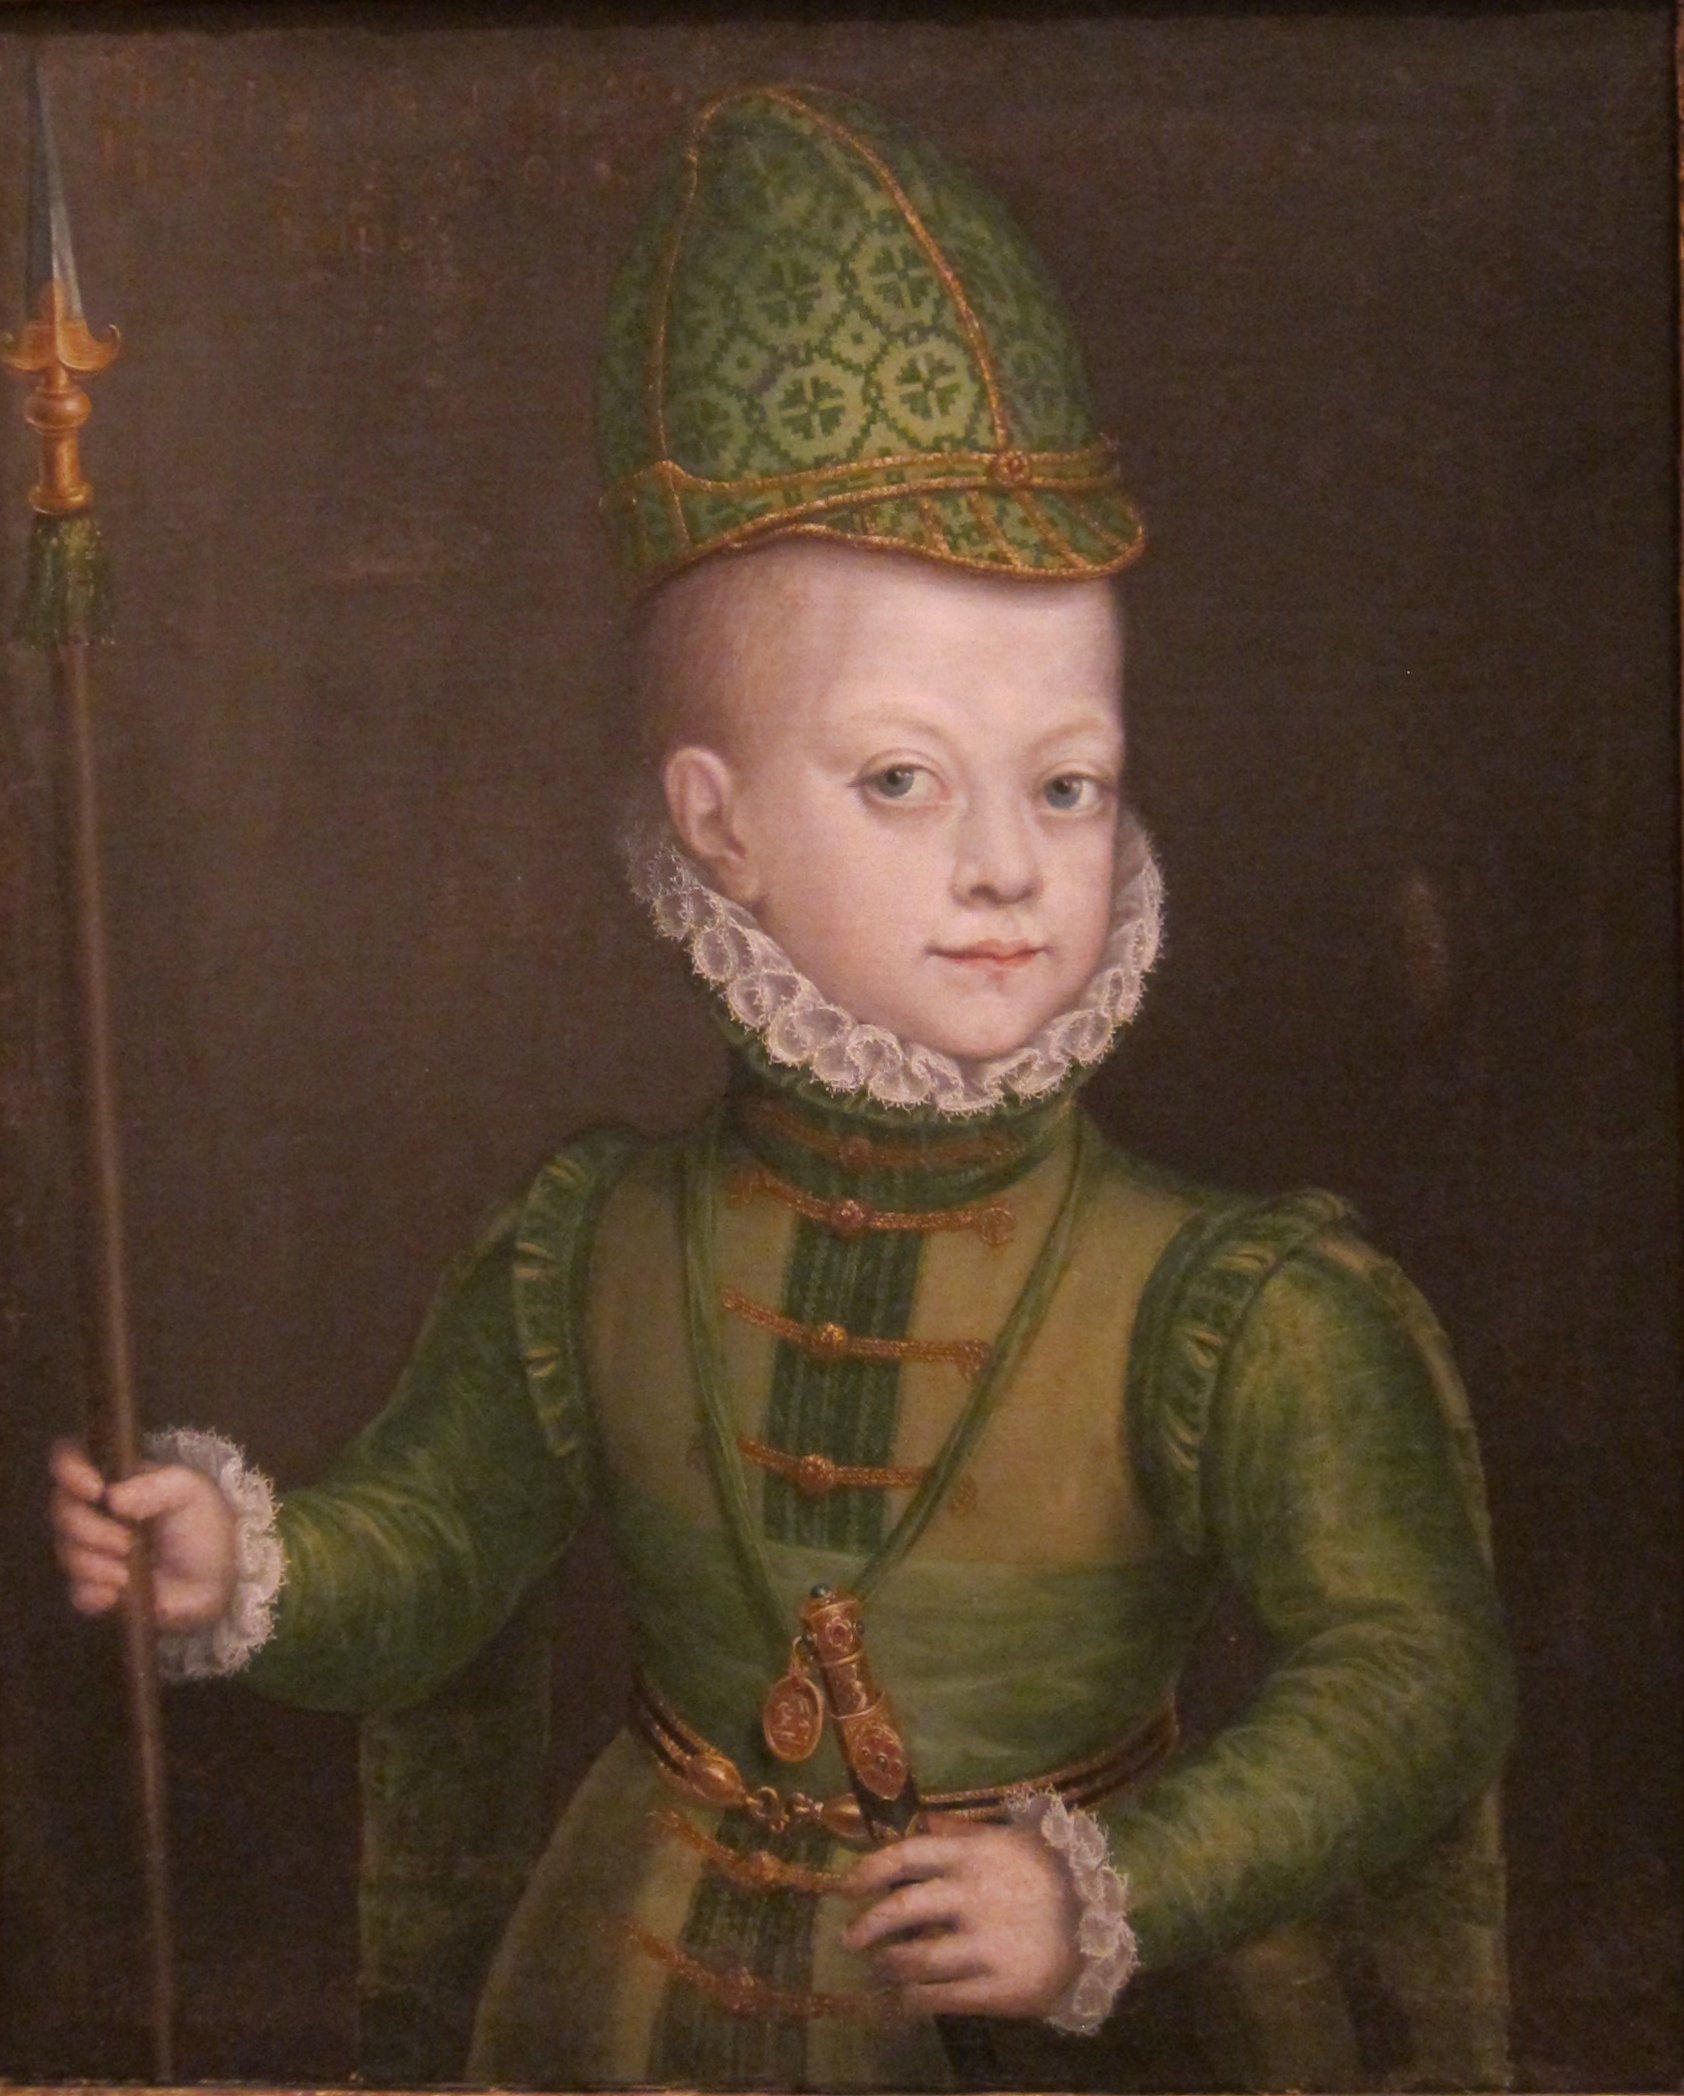 Portrait_of_a_Boy_at_the_Spanish_Court_by_Sofonisba_Anguissola,_San_Diego_Museum_of_Art.JPG